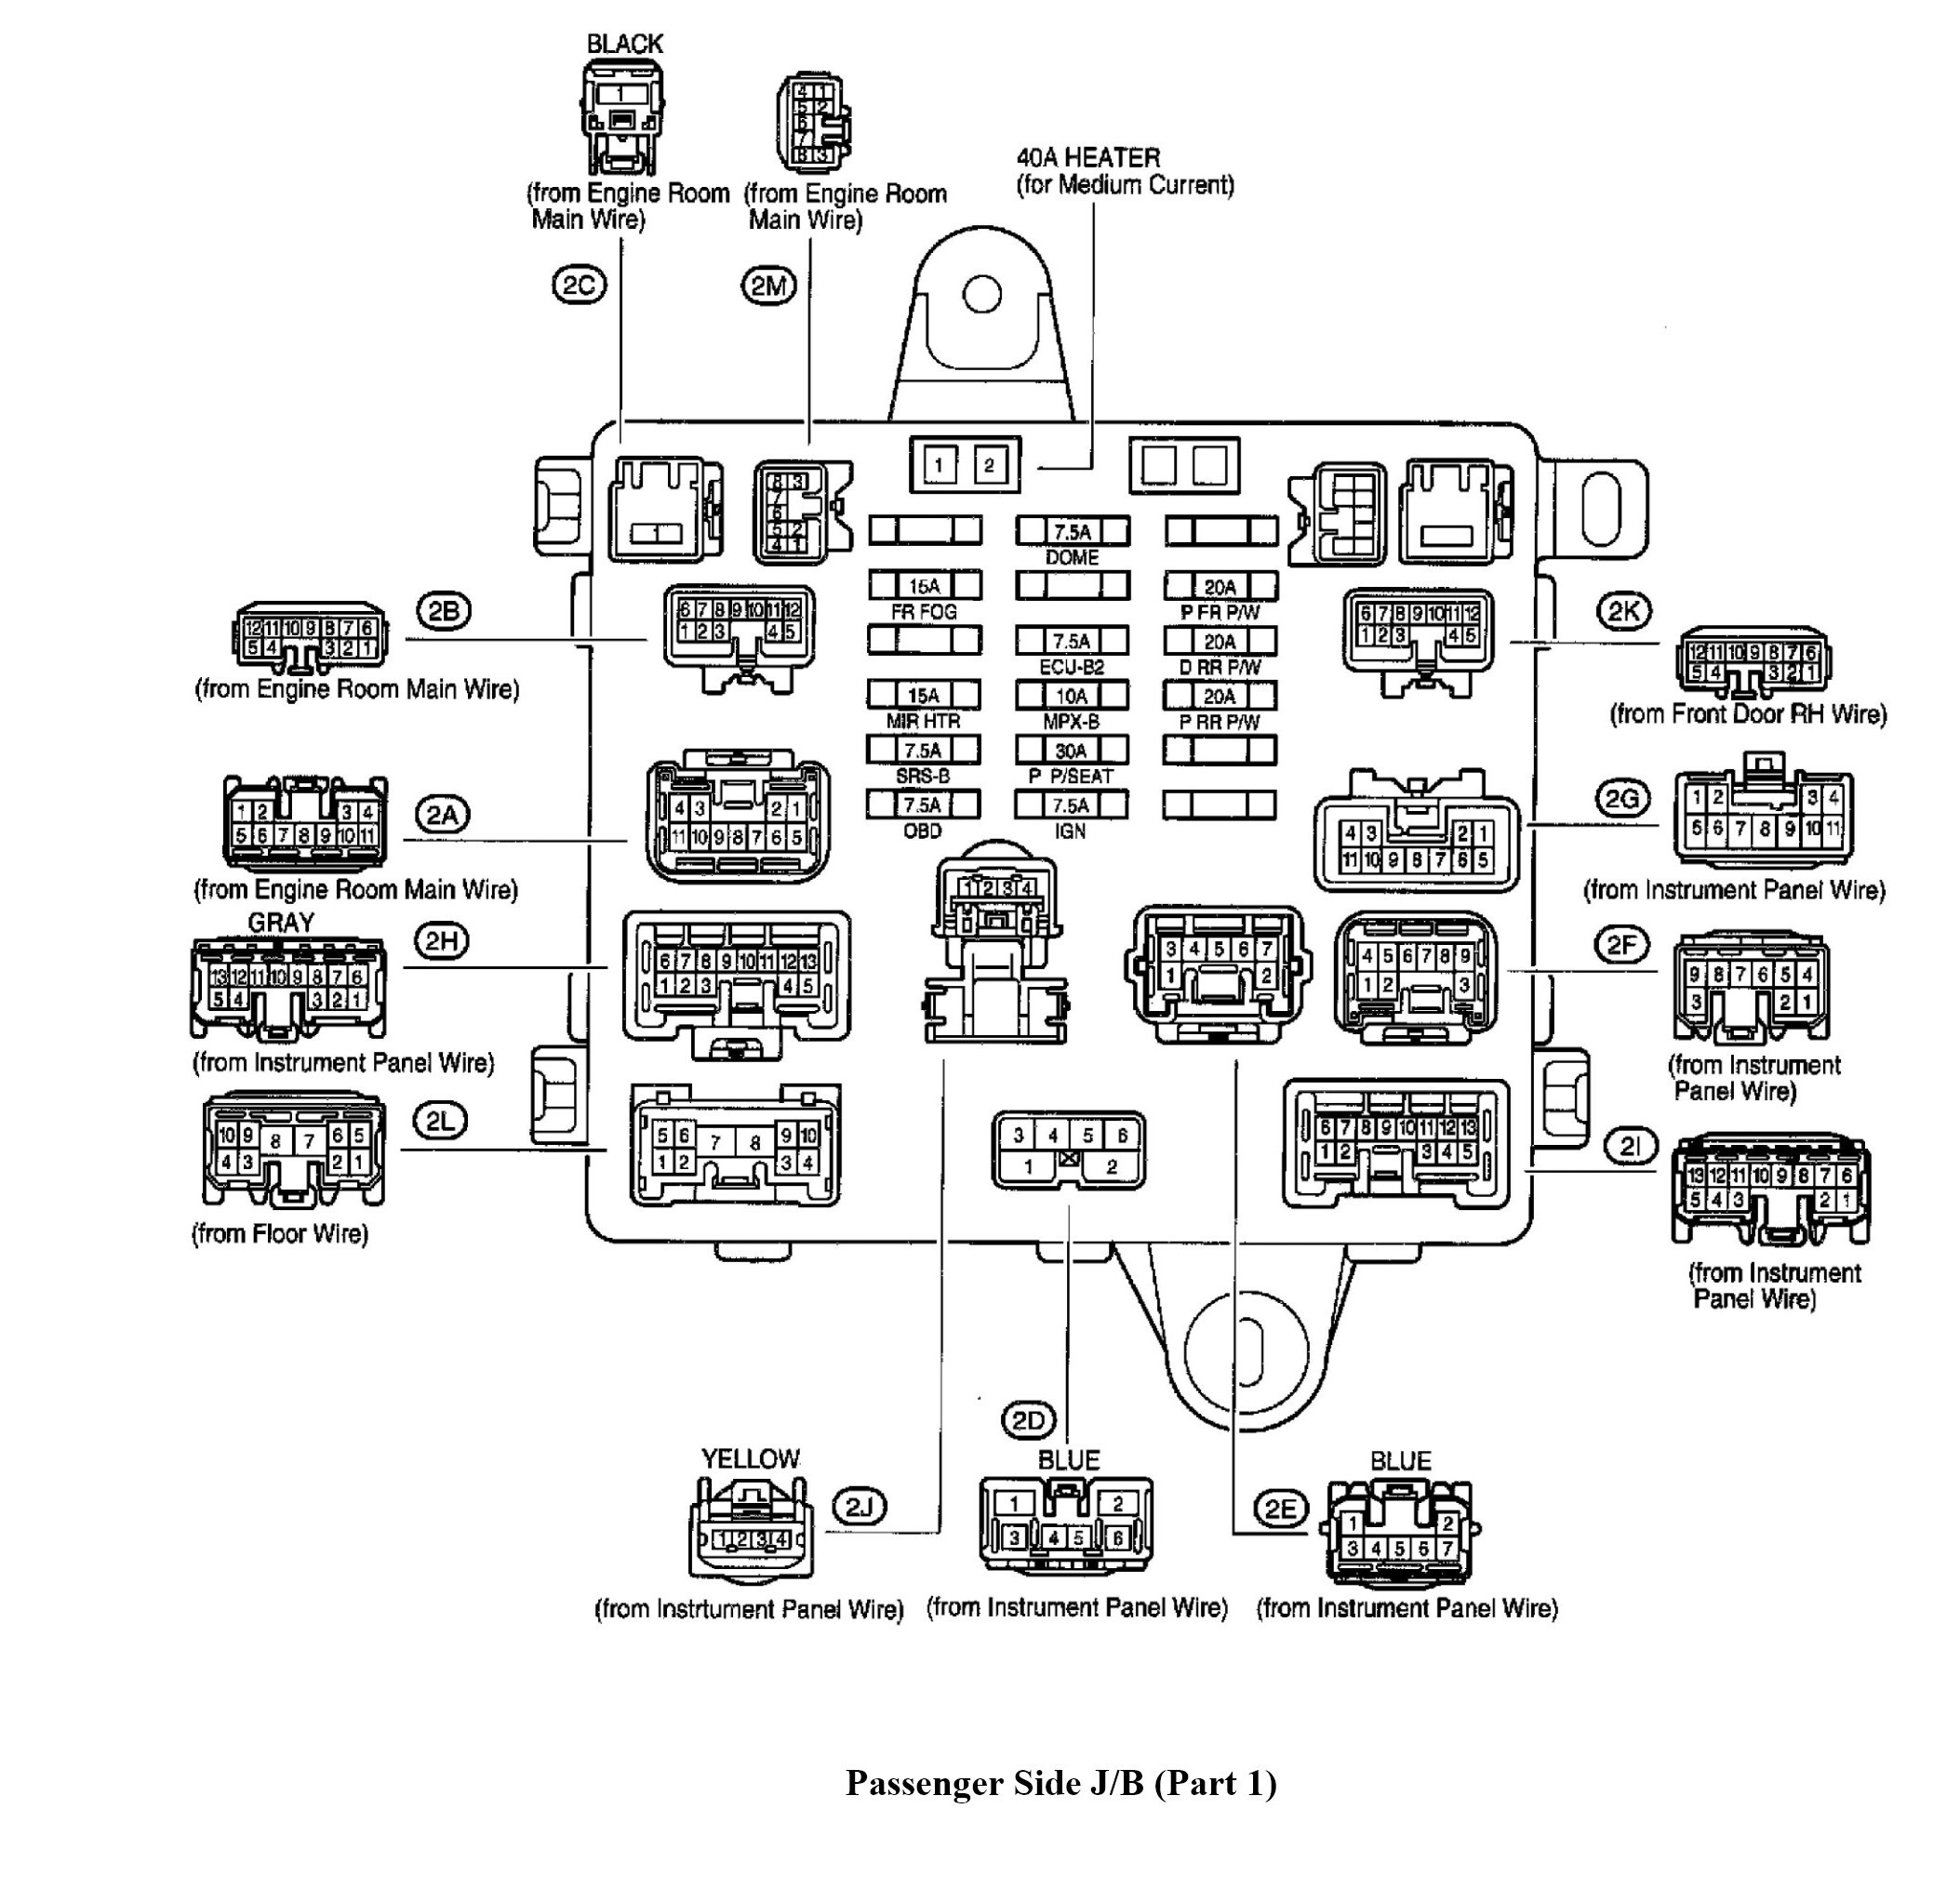 [WRG-7489] Fuse Diagram For 1997 Lexus Es300